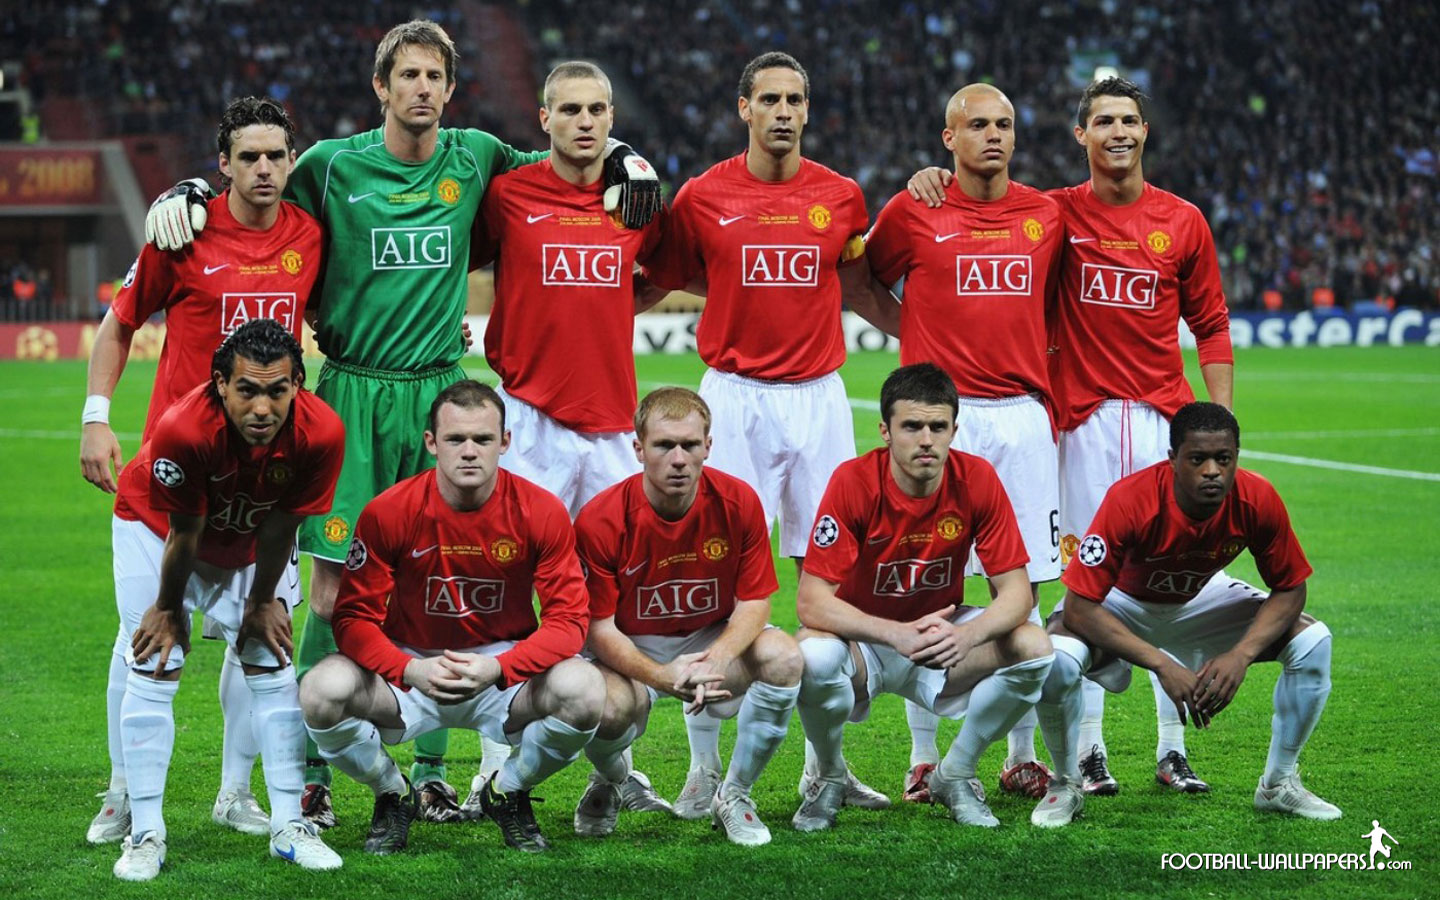 Image Result For Champions League Manchester United Vs Benfica